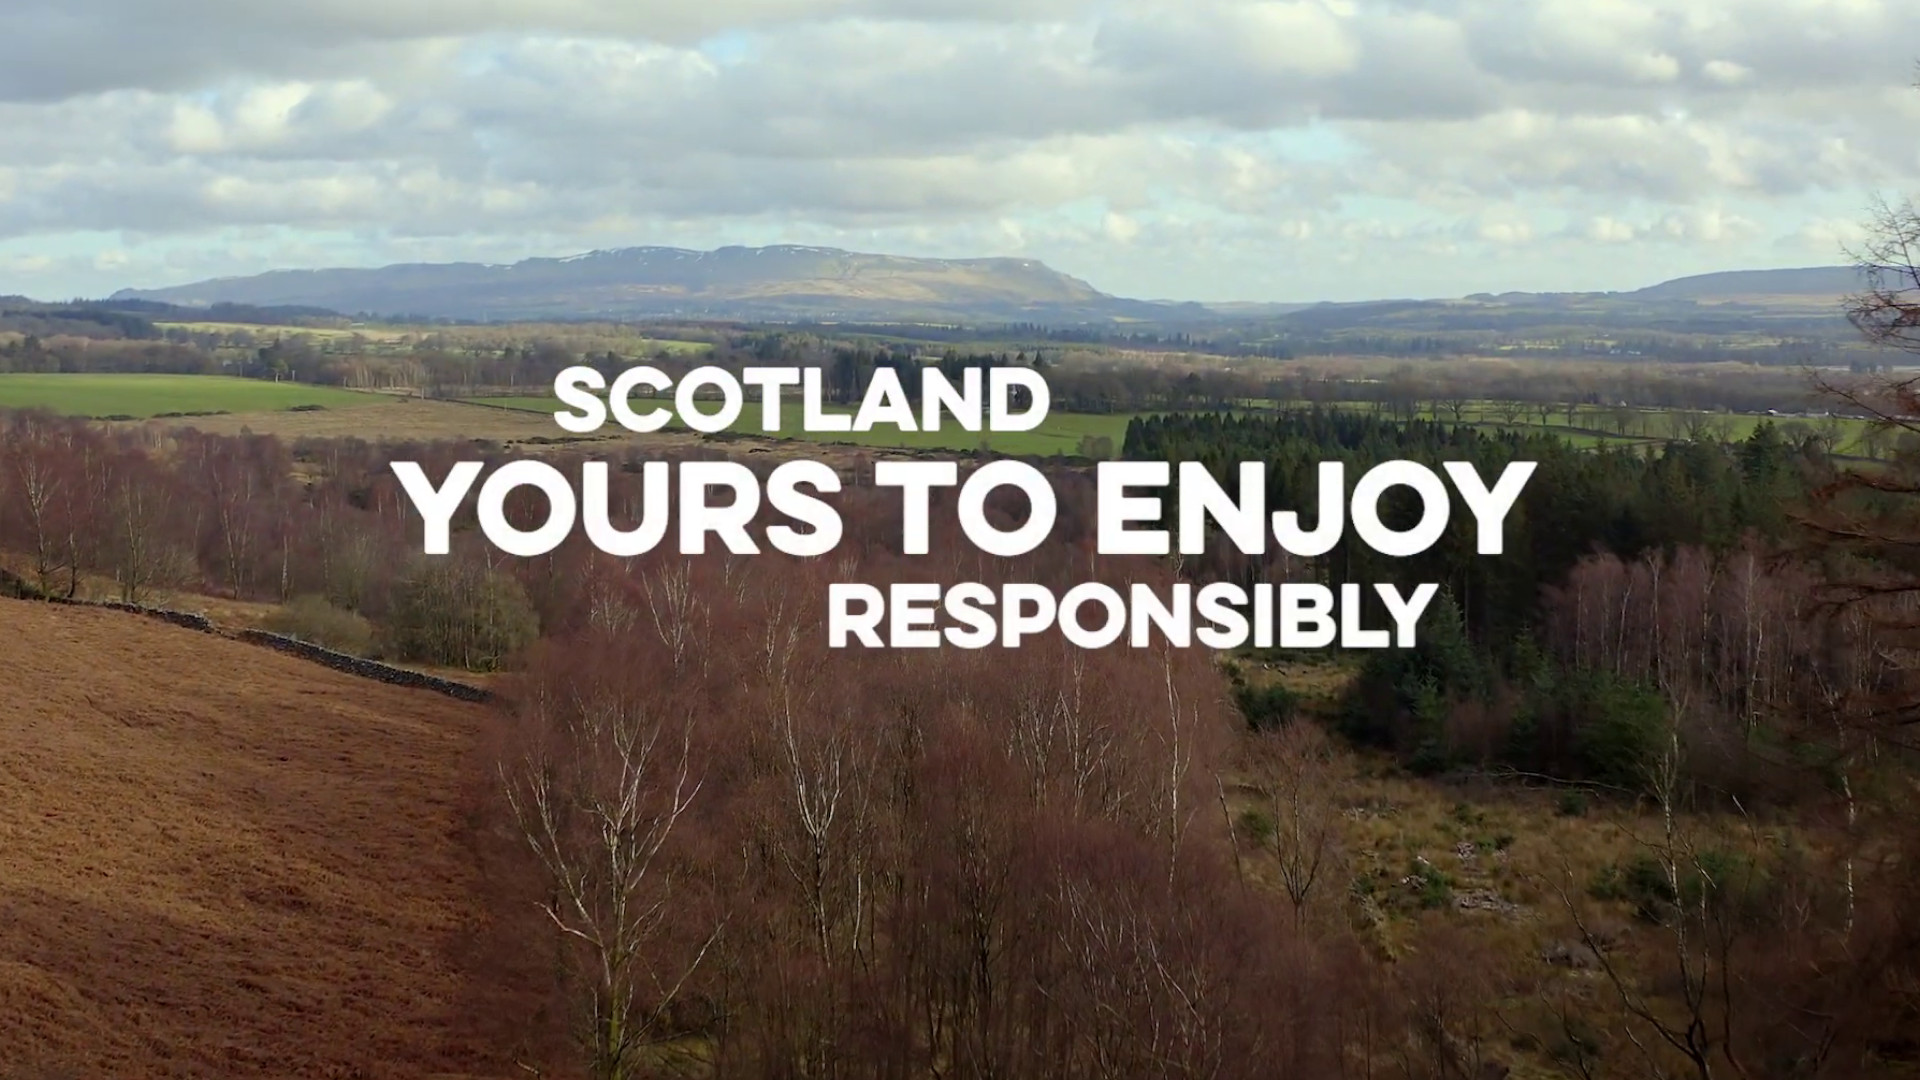 Scotland's Sustainable and Responsible Tourism Campaign